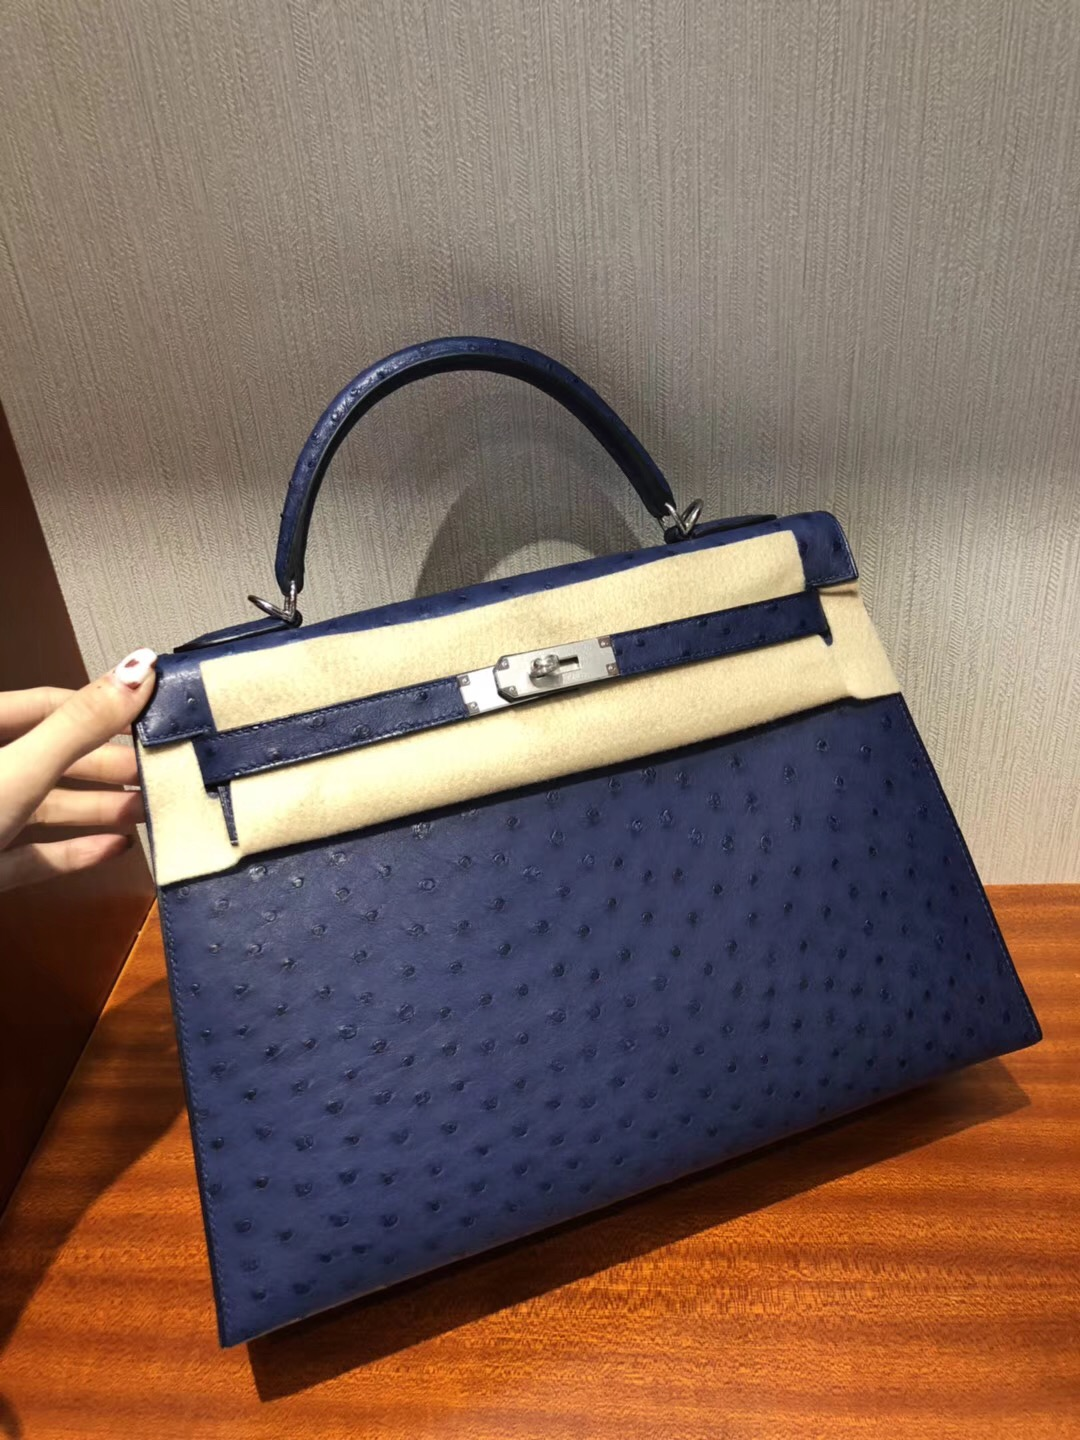 愛馬仕kelly包包價格 Hermes Kelly 32cm bag 7K宝石蓝 鴕鳥皮Ostrich銀扣